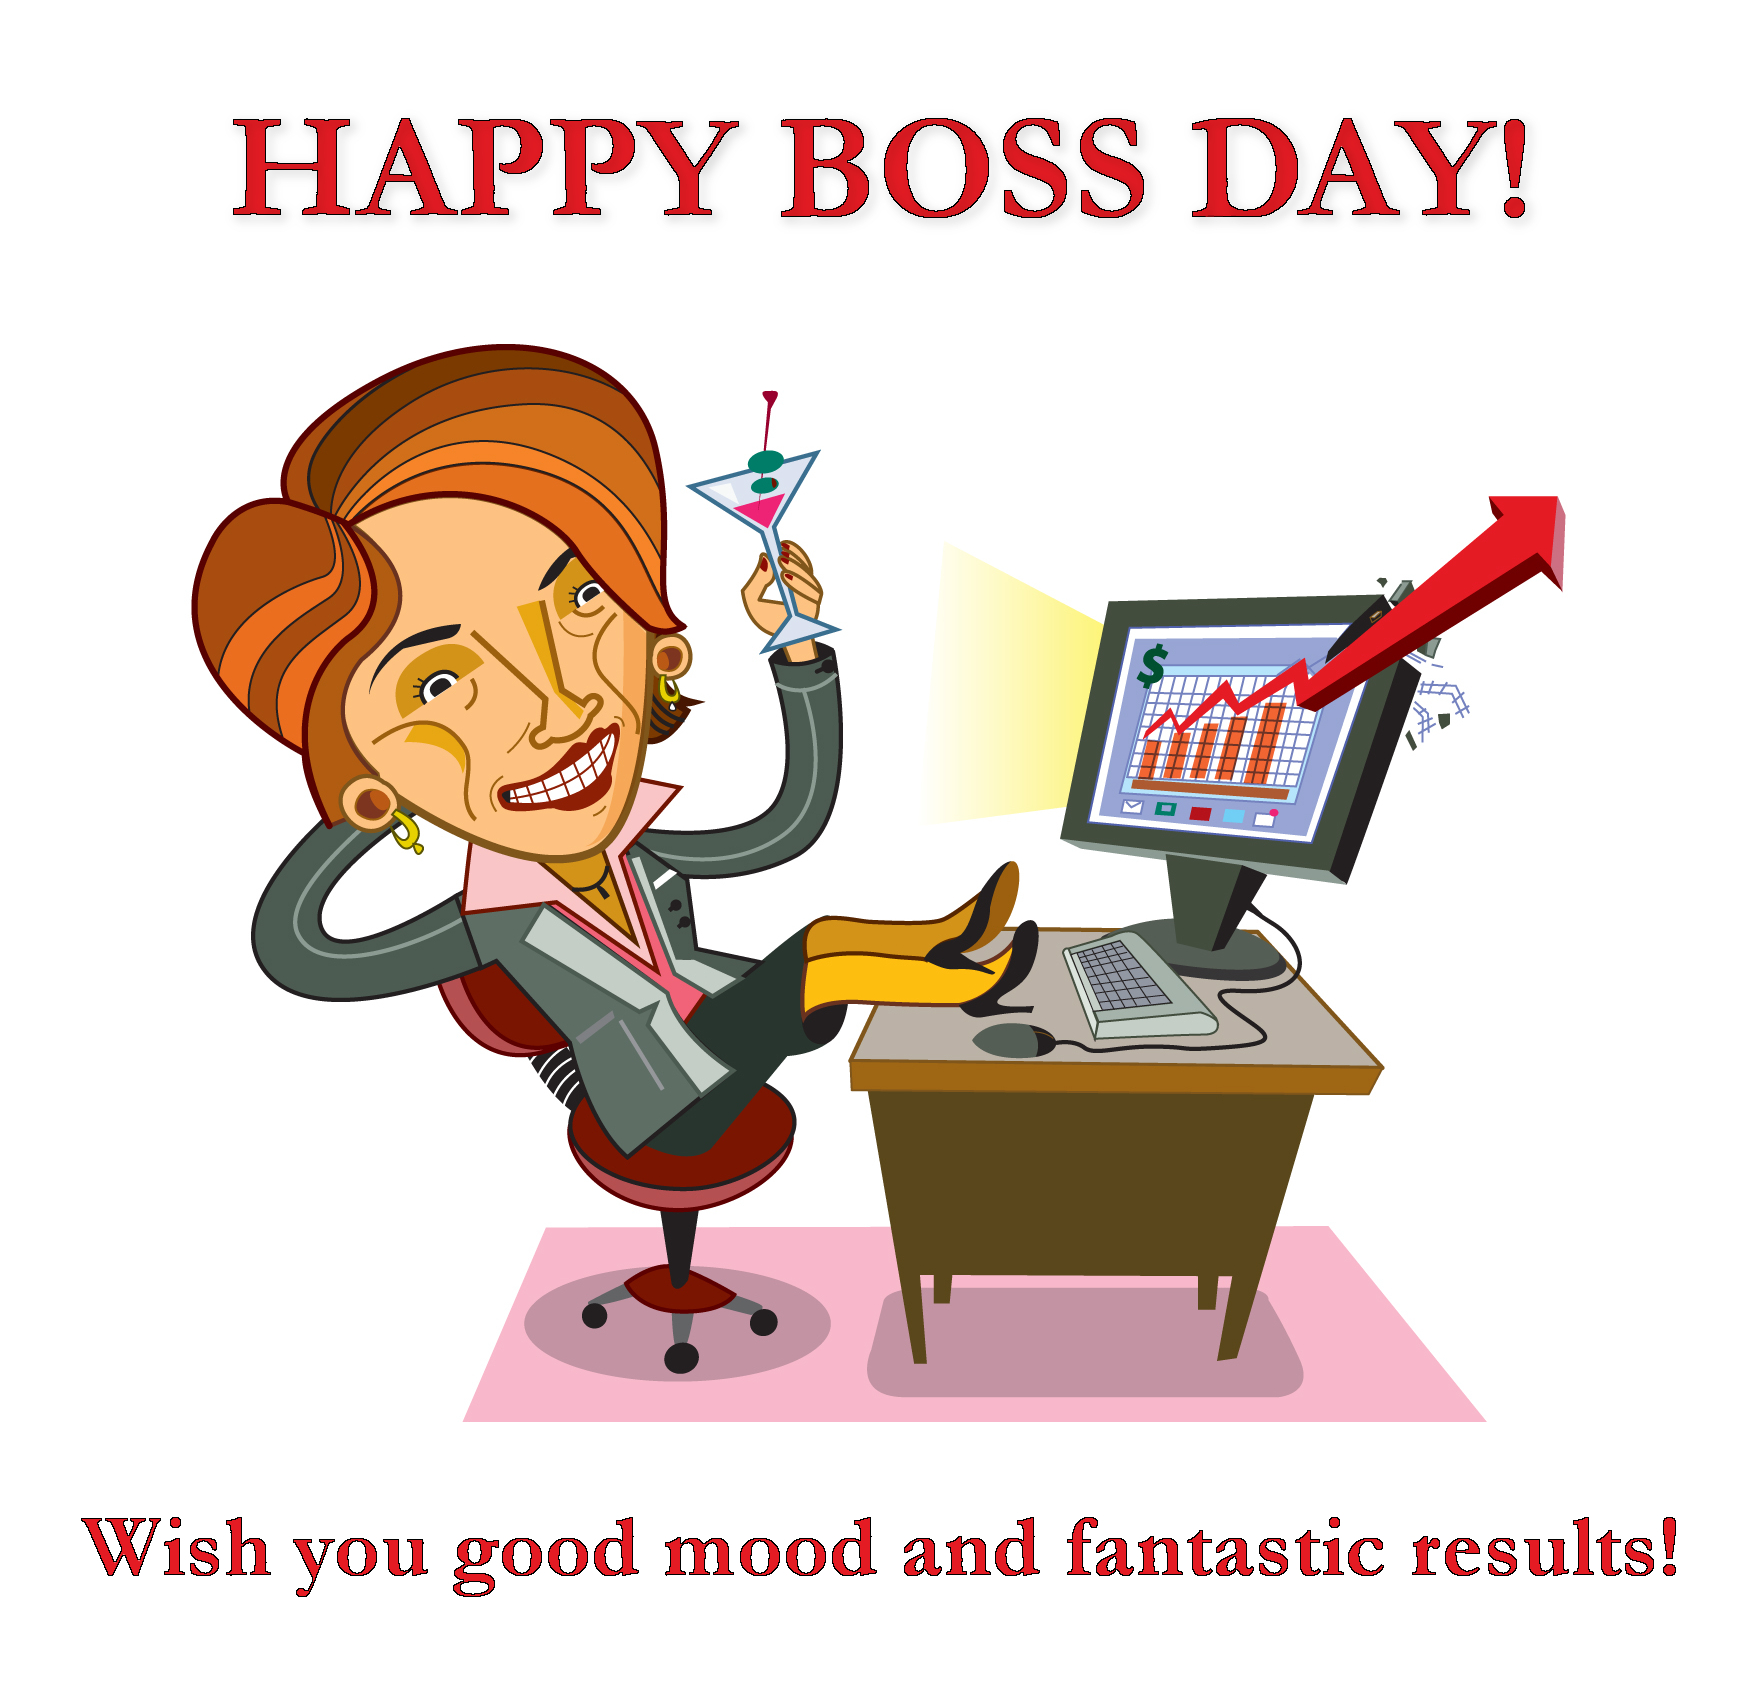 Boss day greetings cartoon female karikatures boss day greetings cartoon female m4hsunfo